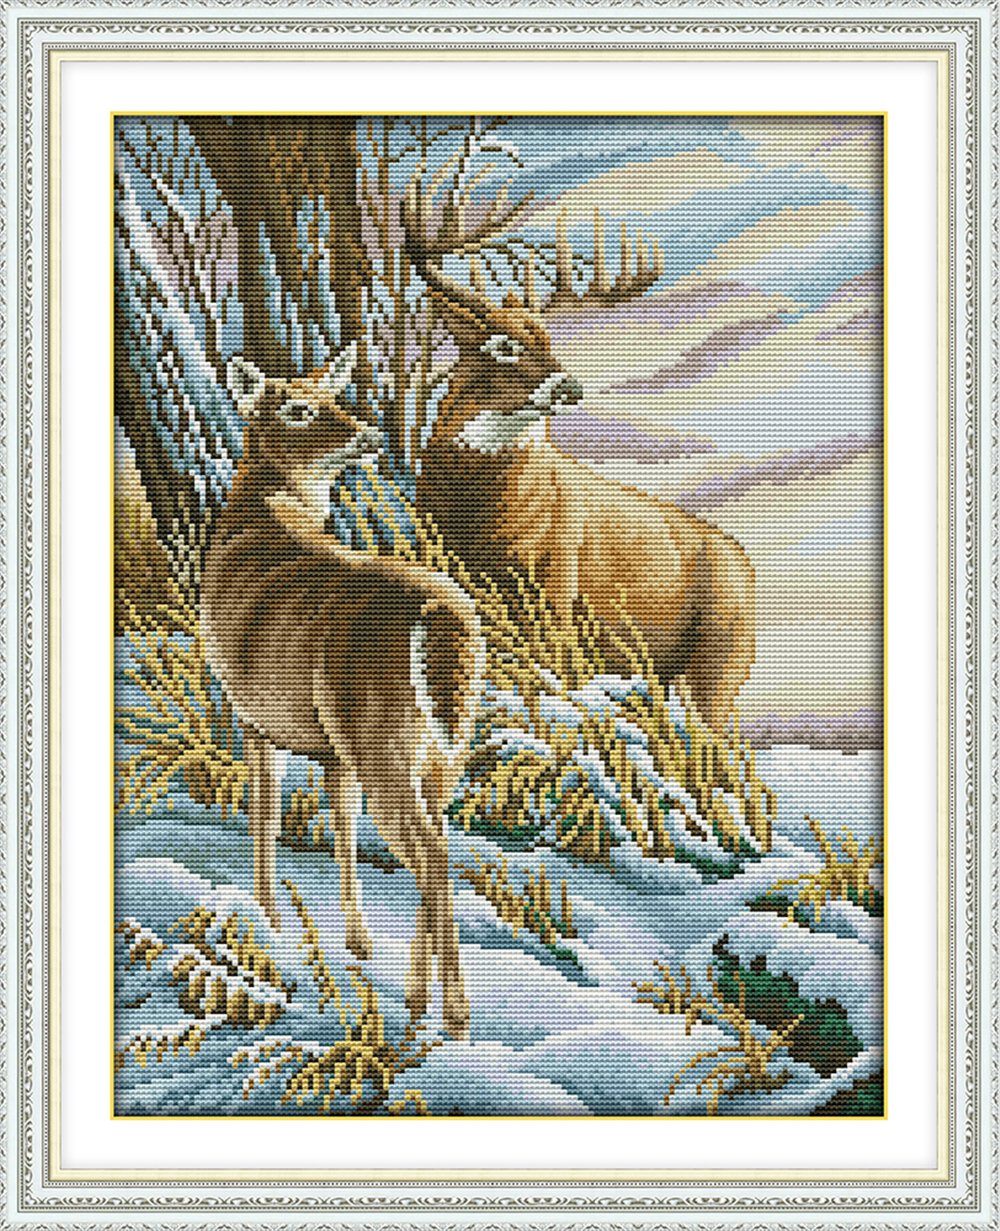 WHEEXLOCK Stamped Cross Stitch Two Deer 11 Count 16.5